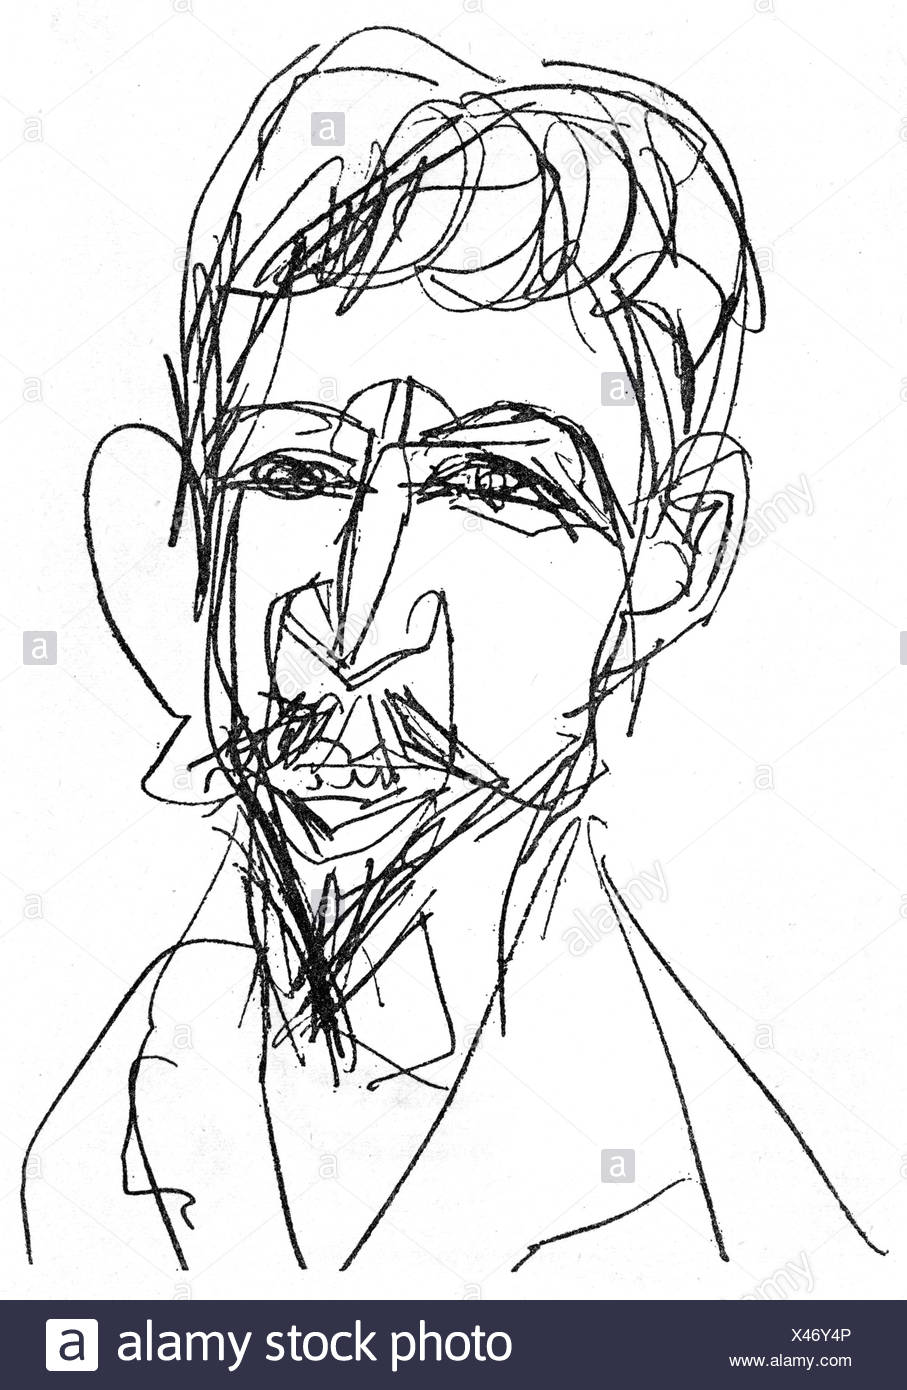 Doeblin, Alfred, 10.8.1878 - 26.6.1957, German author / writer, portrait, drawing by Ernst Ludwig Kirchner, 1913, , Additional-Rights-Clearances-NA - Stock Image